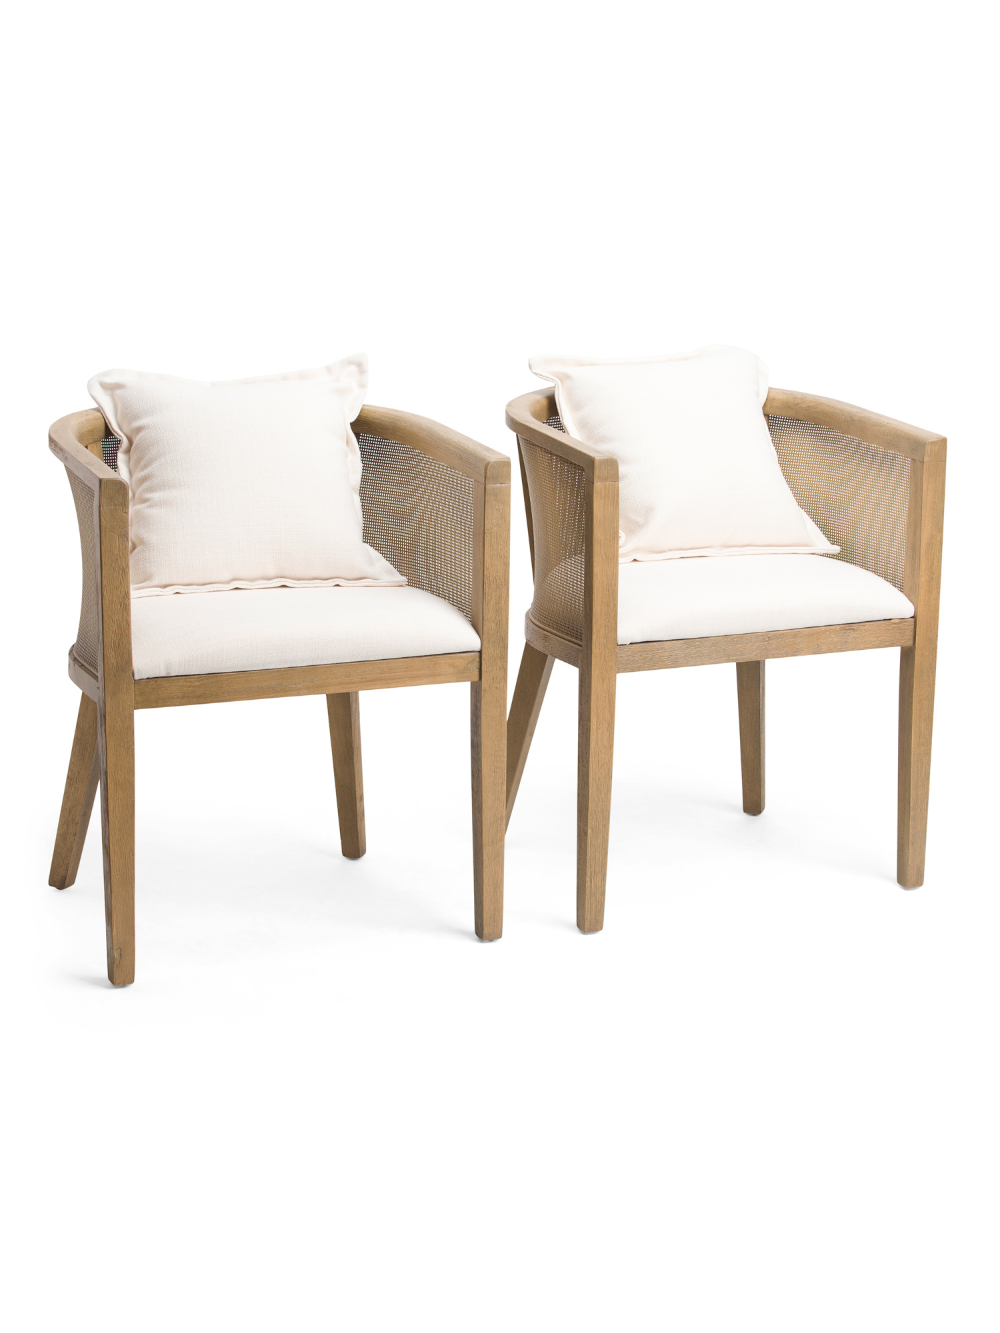 Set Of 2 Cane Round Back Chairs Home T.J.Maxx in 2020